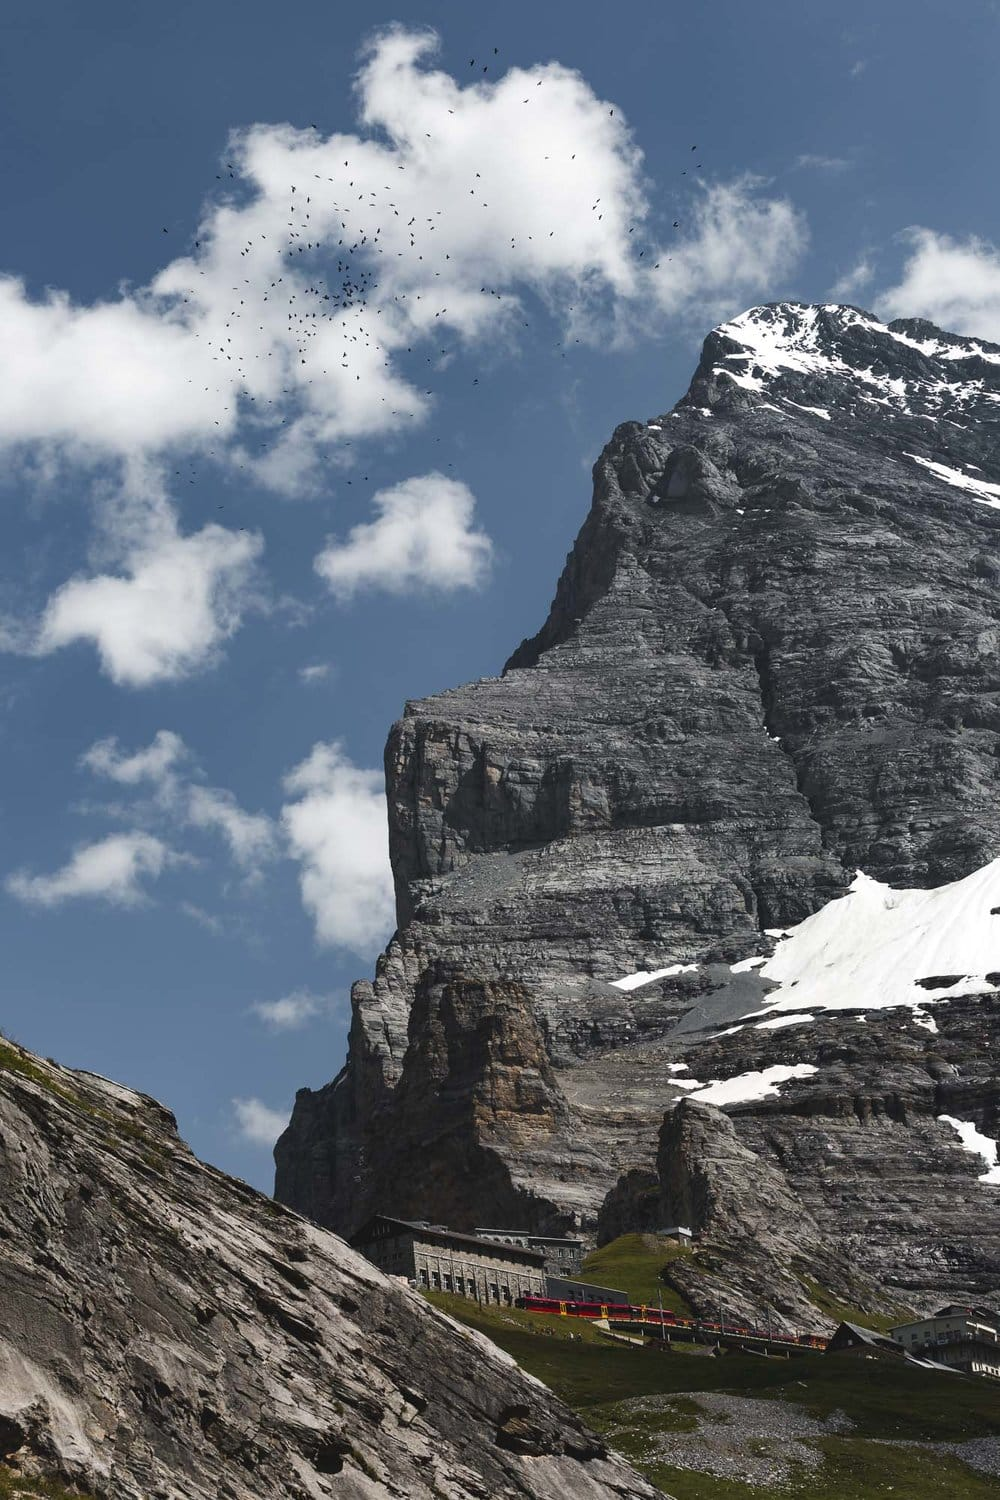 North Face of The Eiger